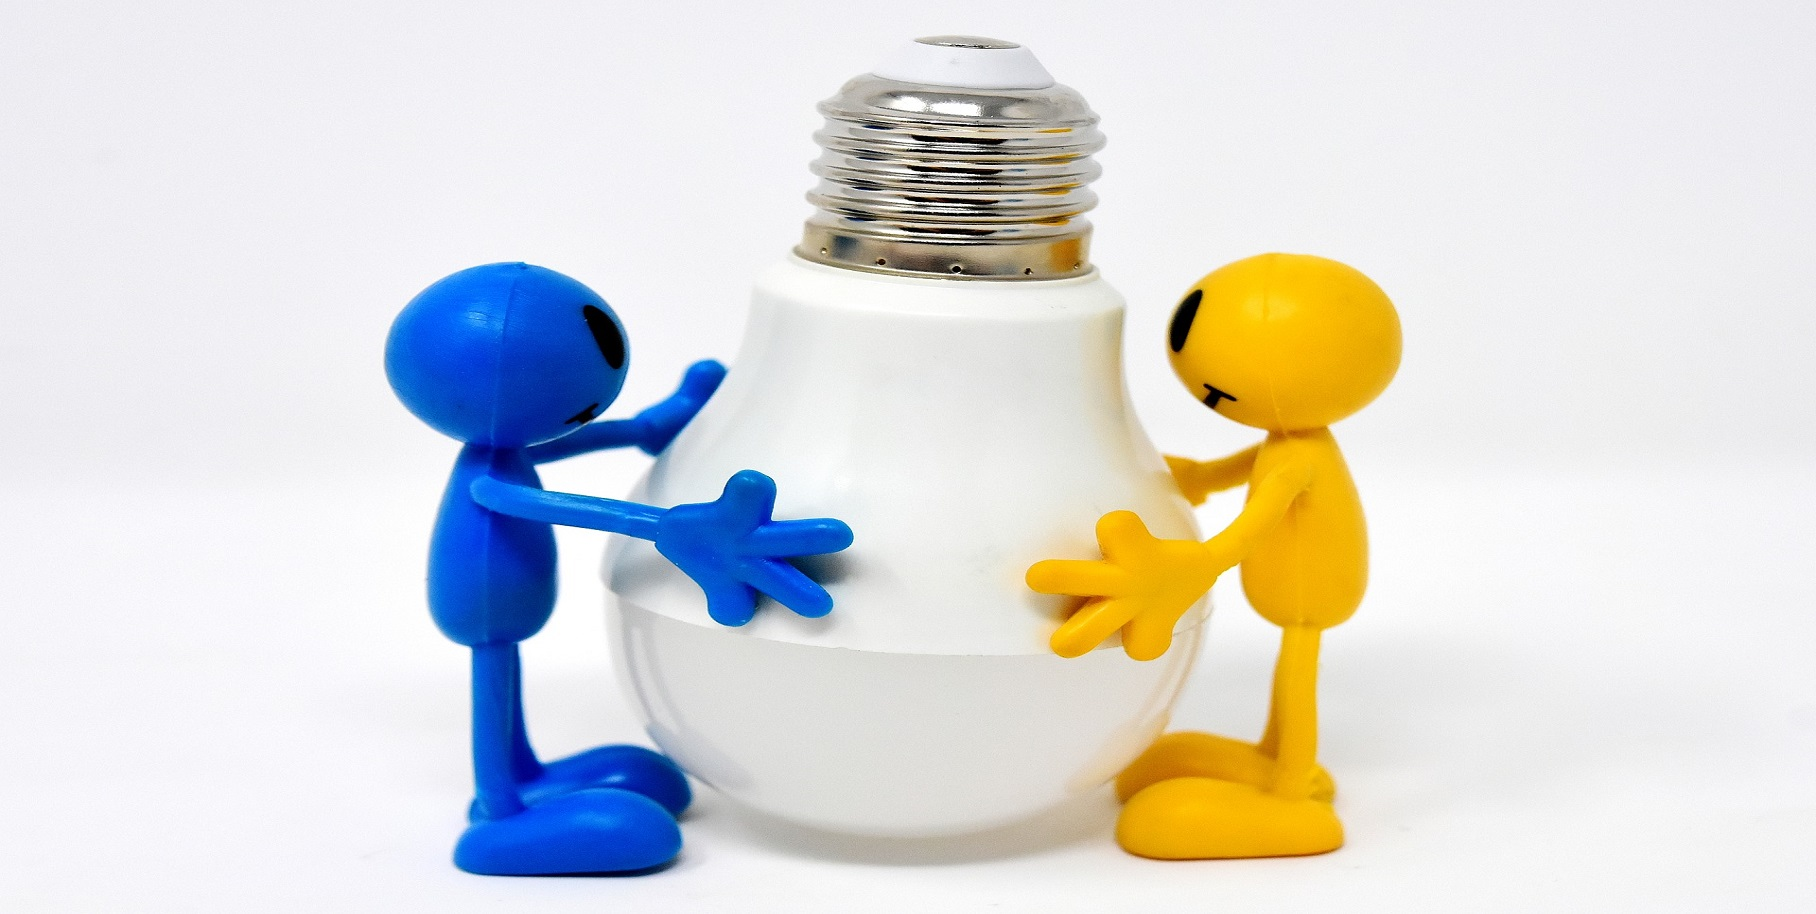 All You Need to Know About Shifting to LEDs